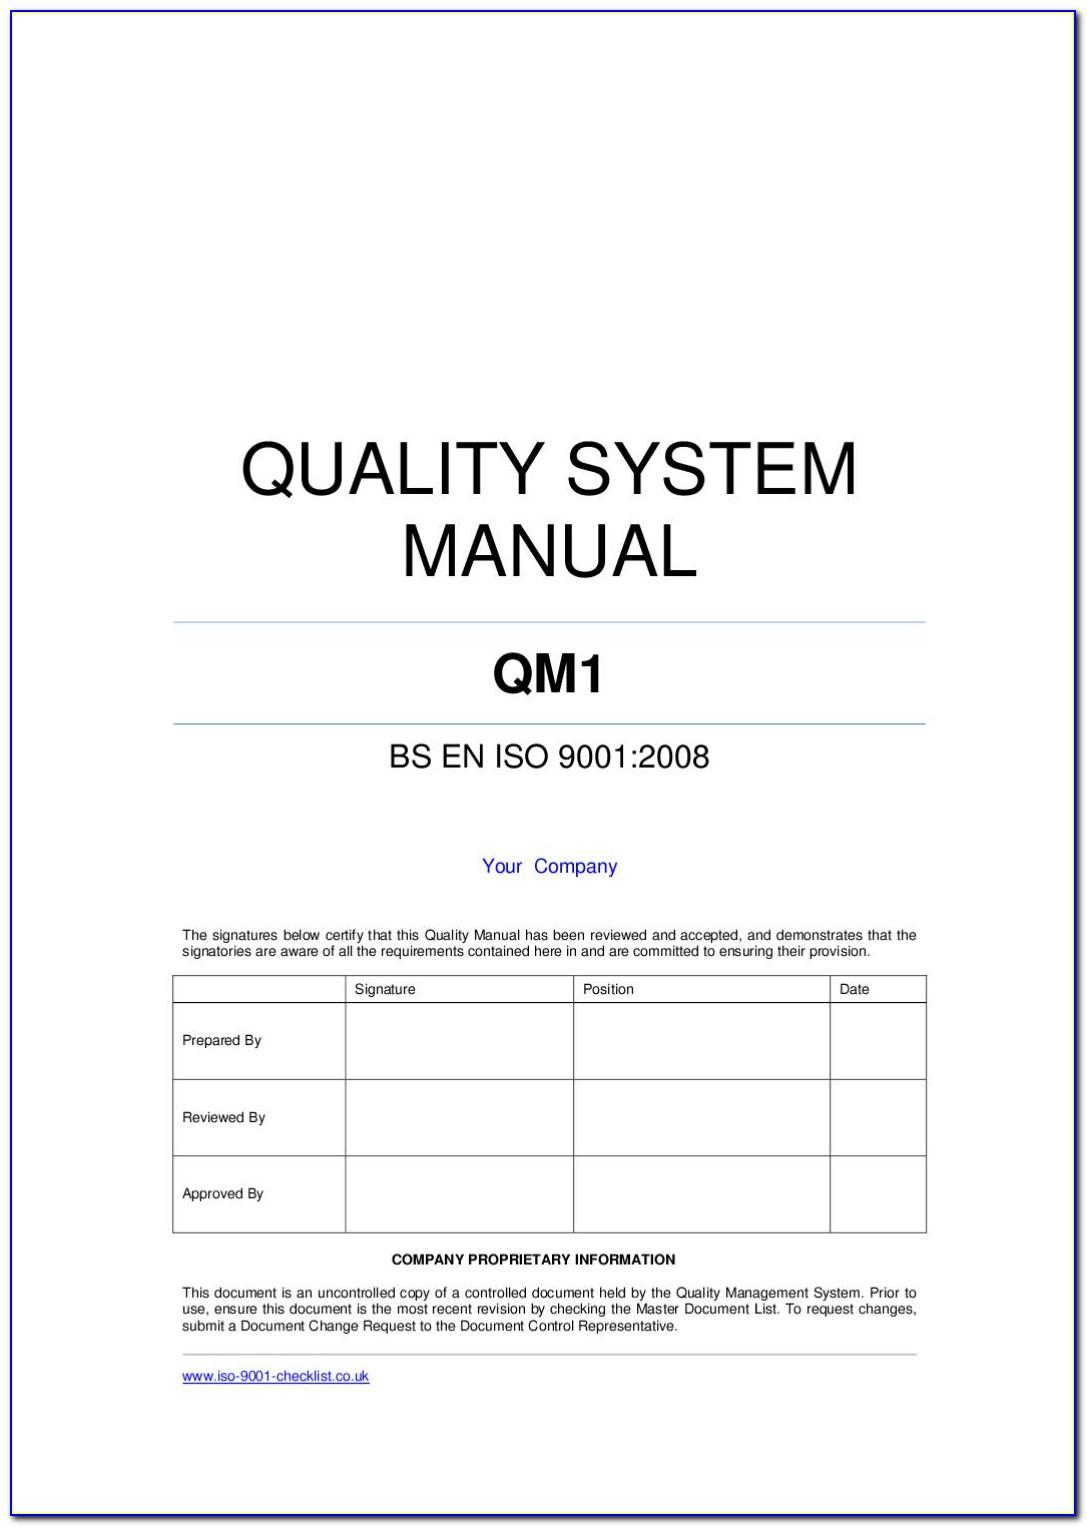 Iso 9001 Quality Manual 2015 Template